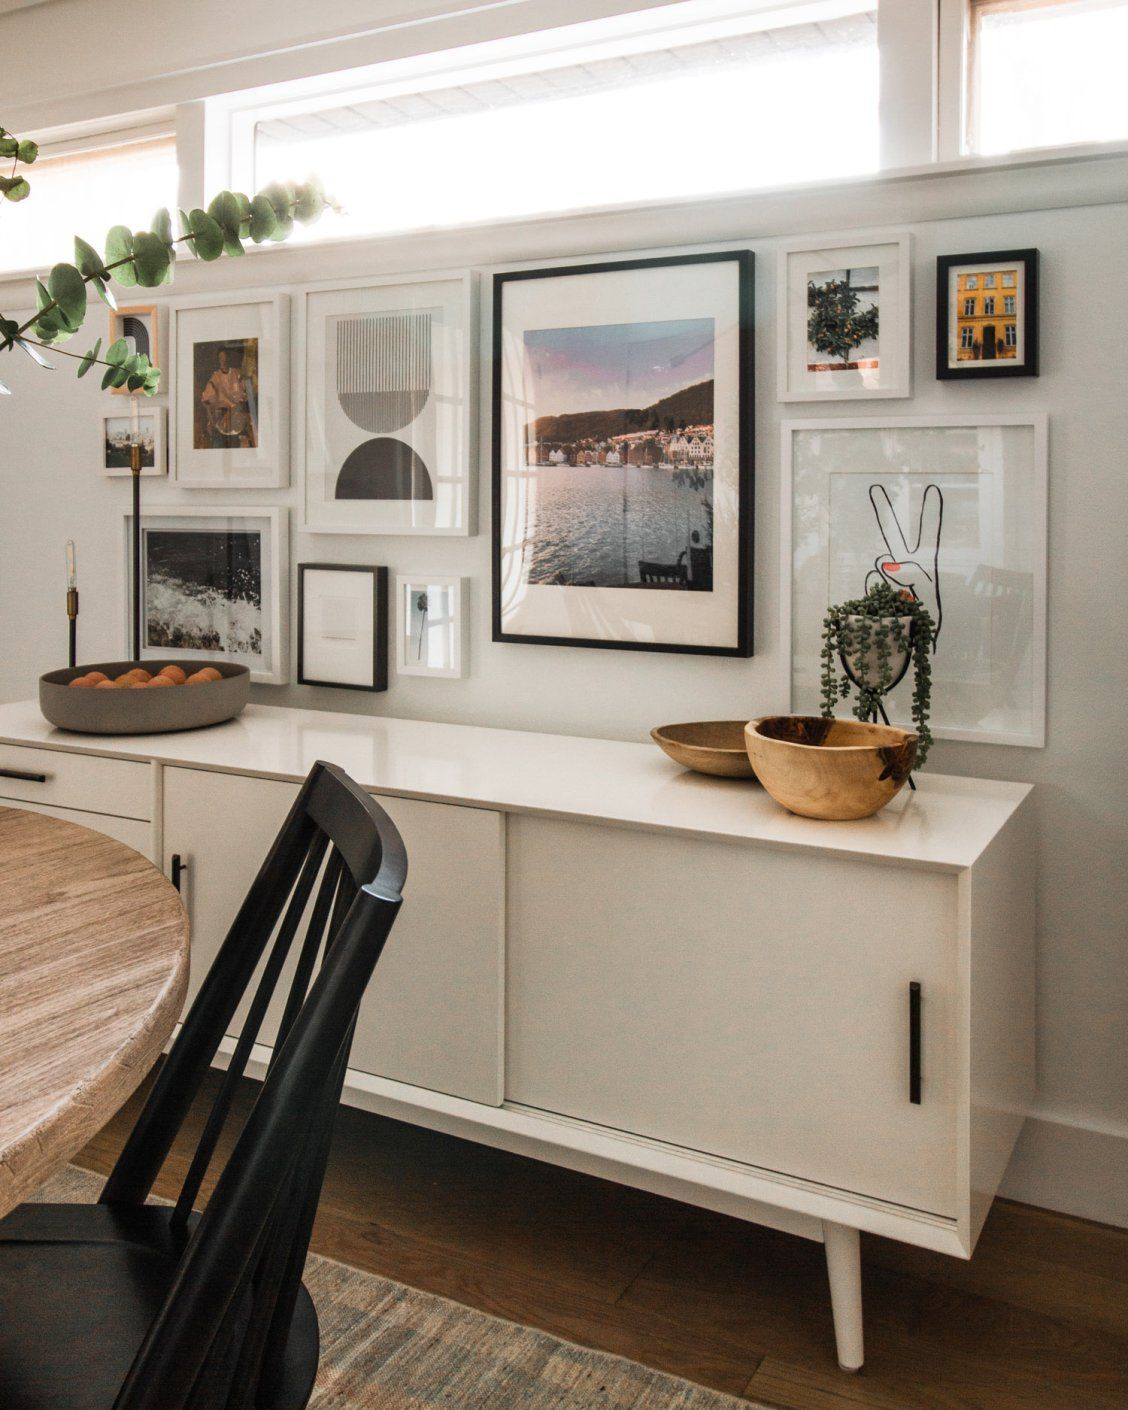 Dining room console table — west elm | House Tours in 2019 ...